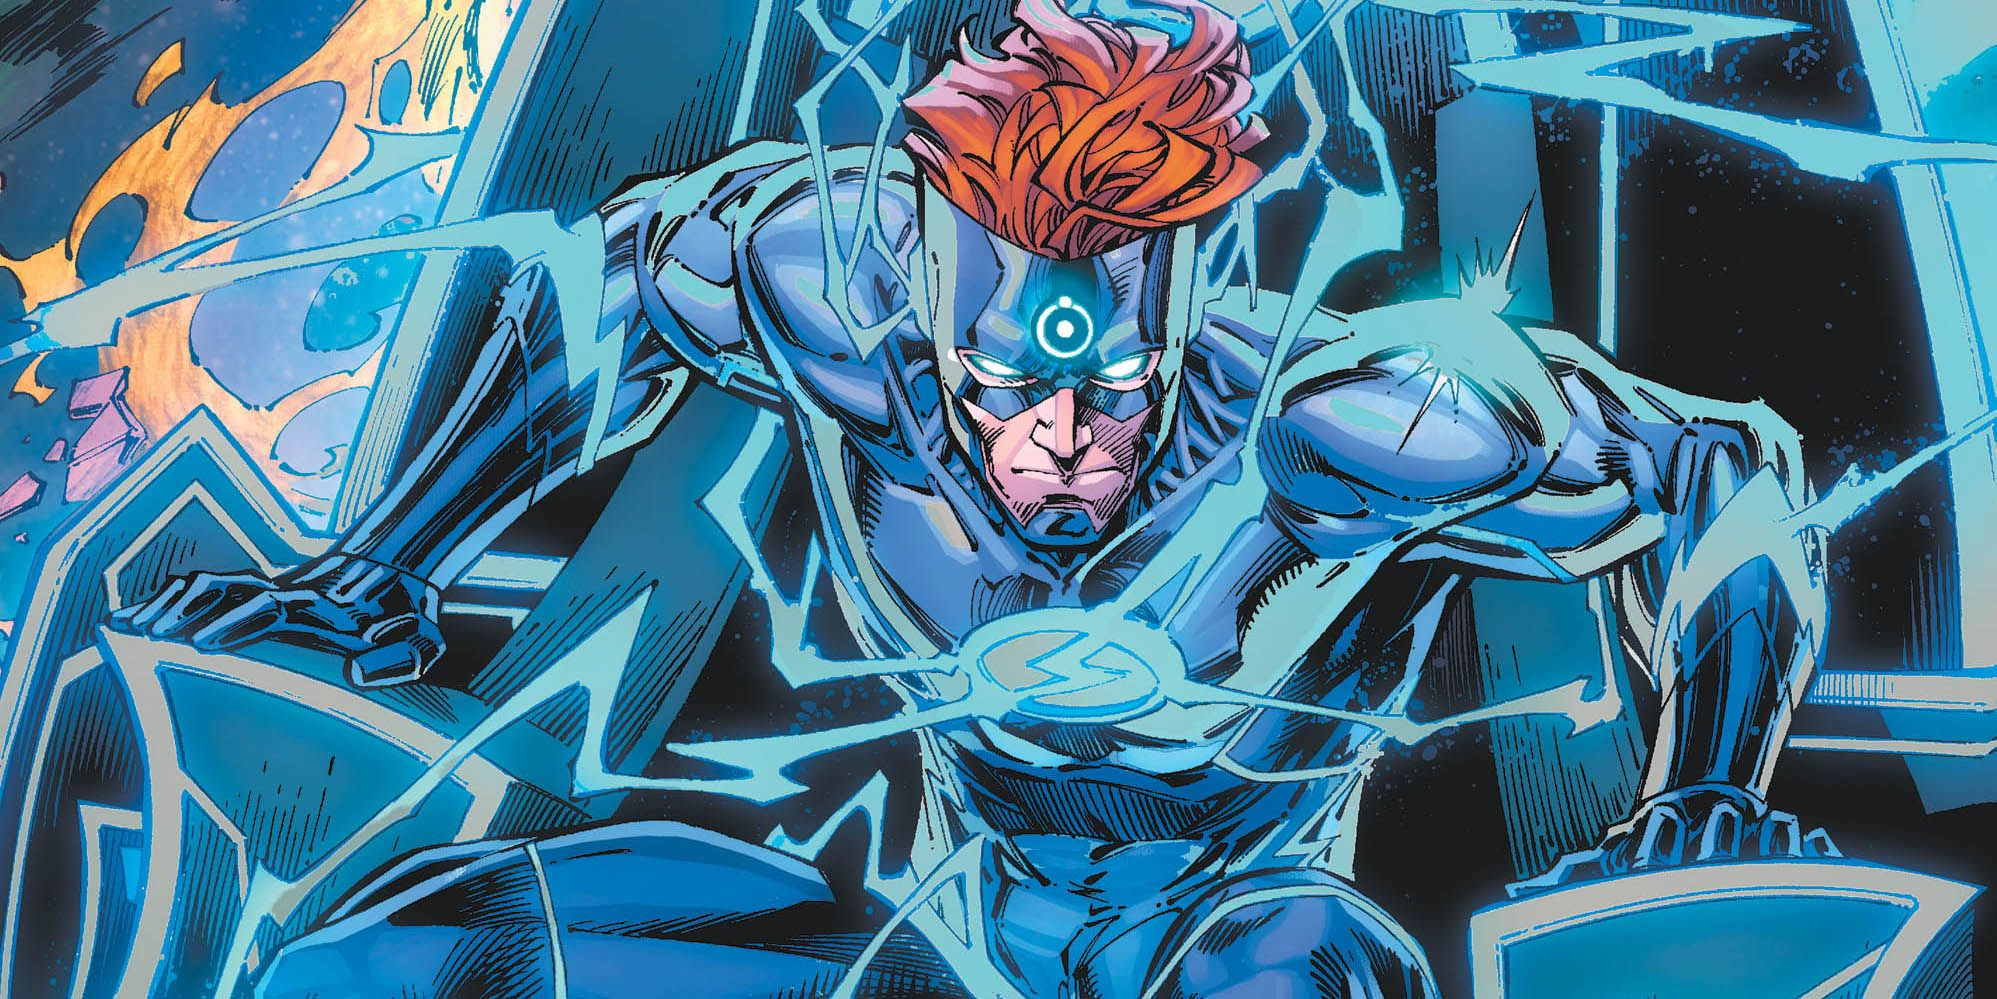 EXCLUSIVE PREVIEW: Wally West Becomes Doctor Manhattan in Flash Forward